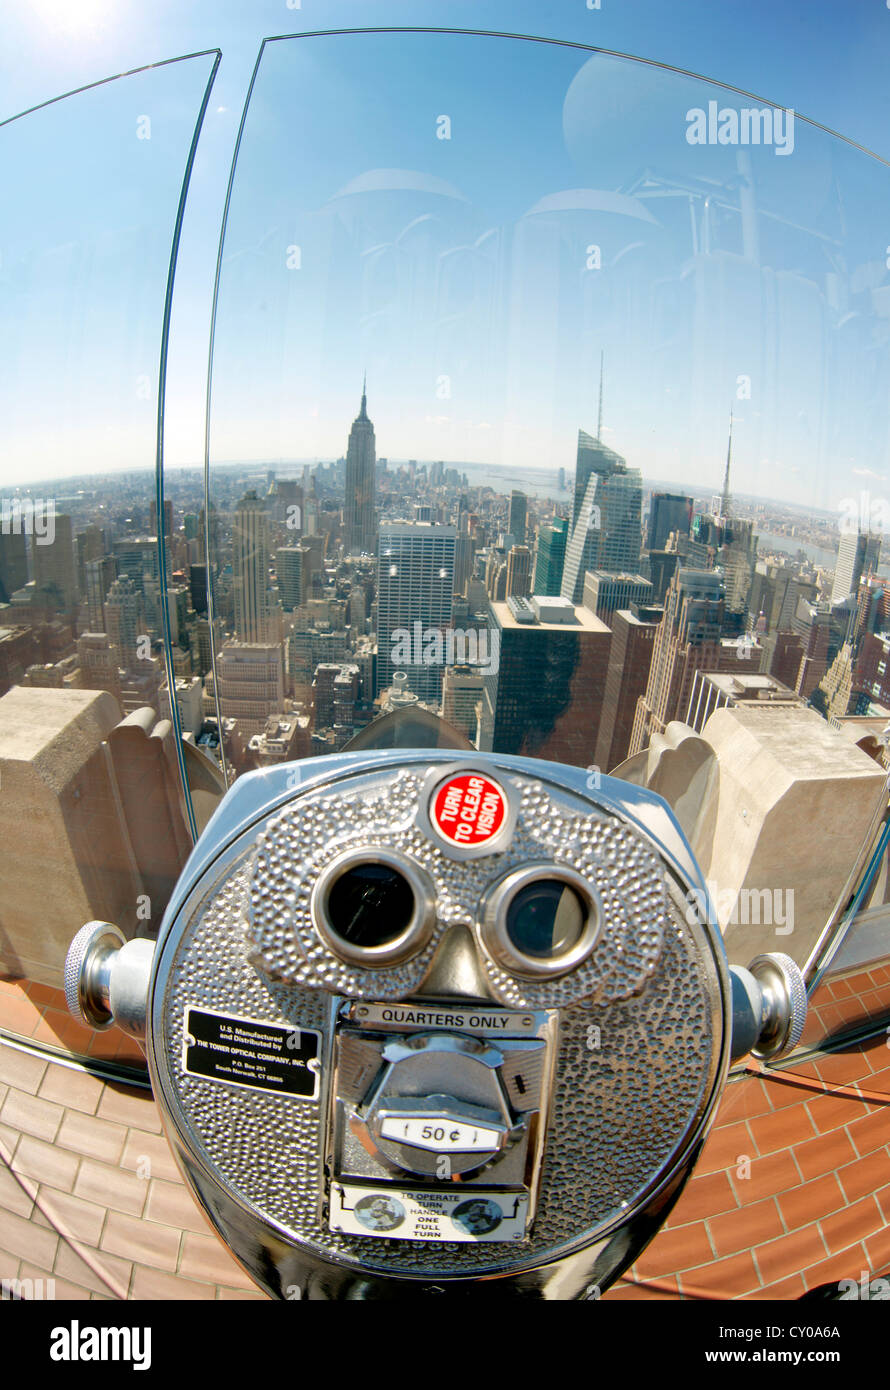 Coin-telescope, view from Rockefeller Center with the skyline, New York City, New York, United States, North America - Stock Image